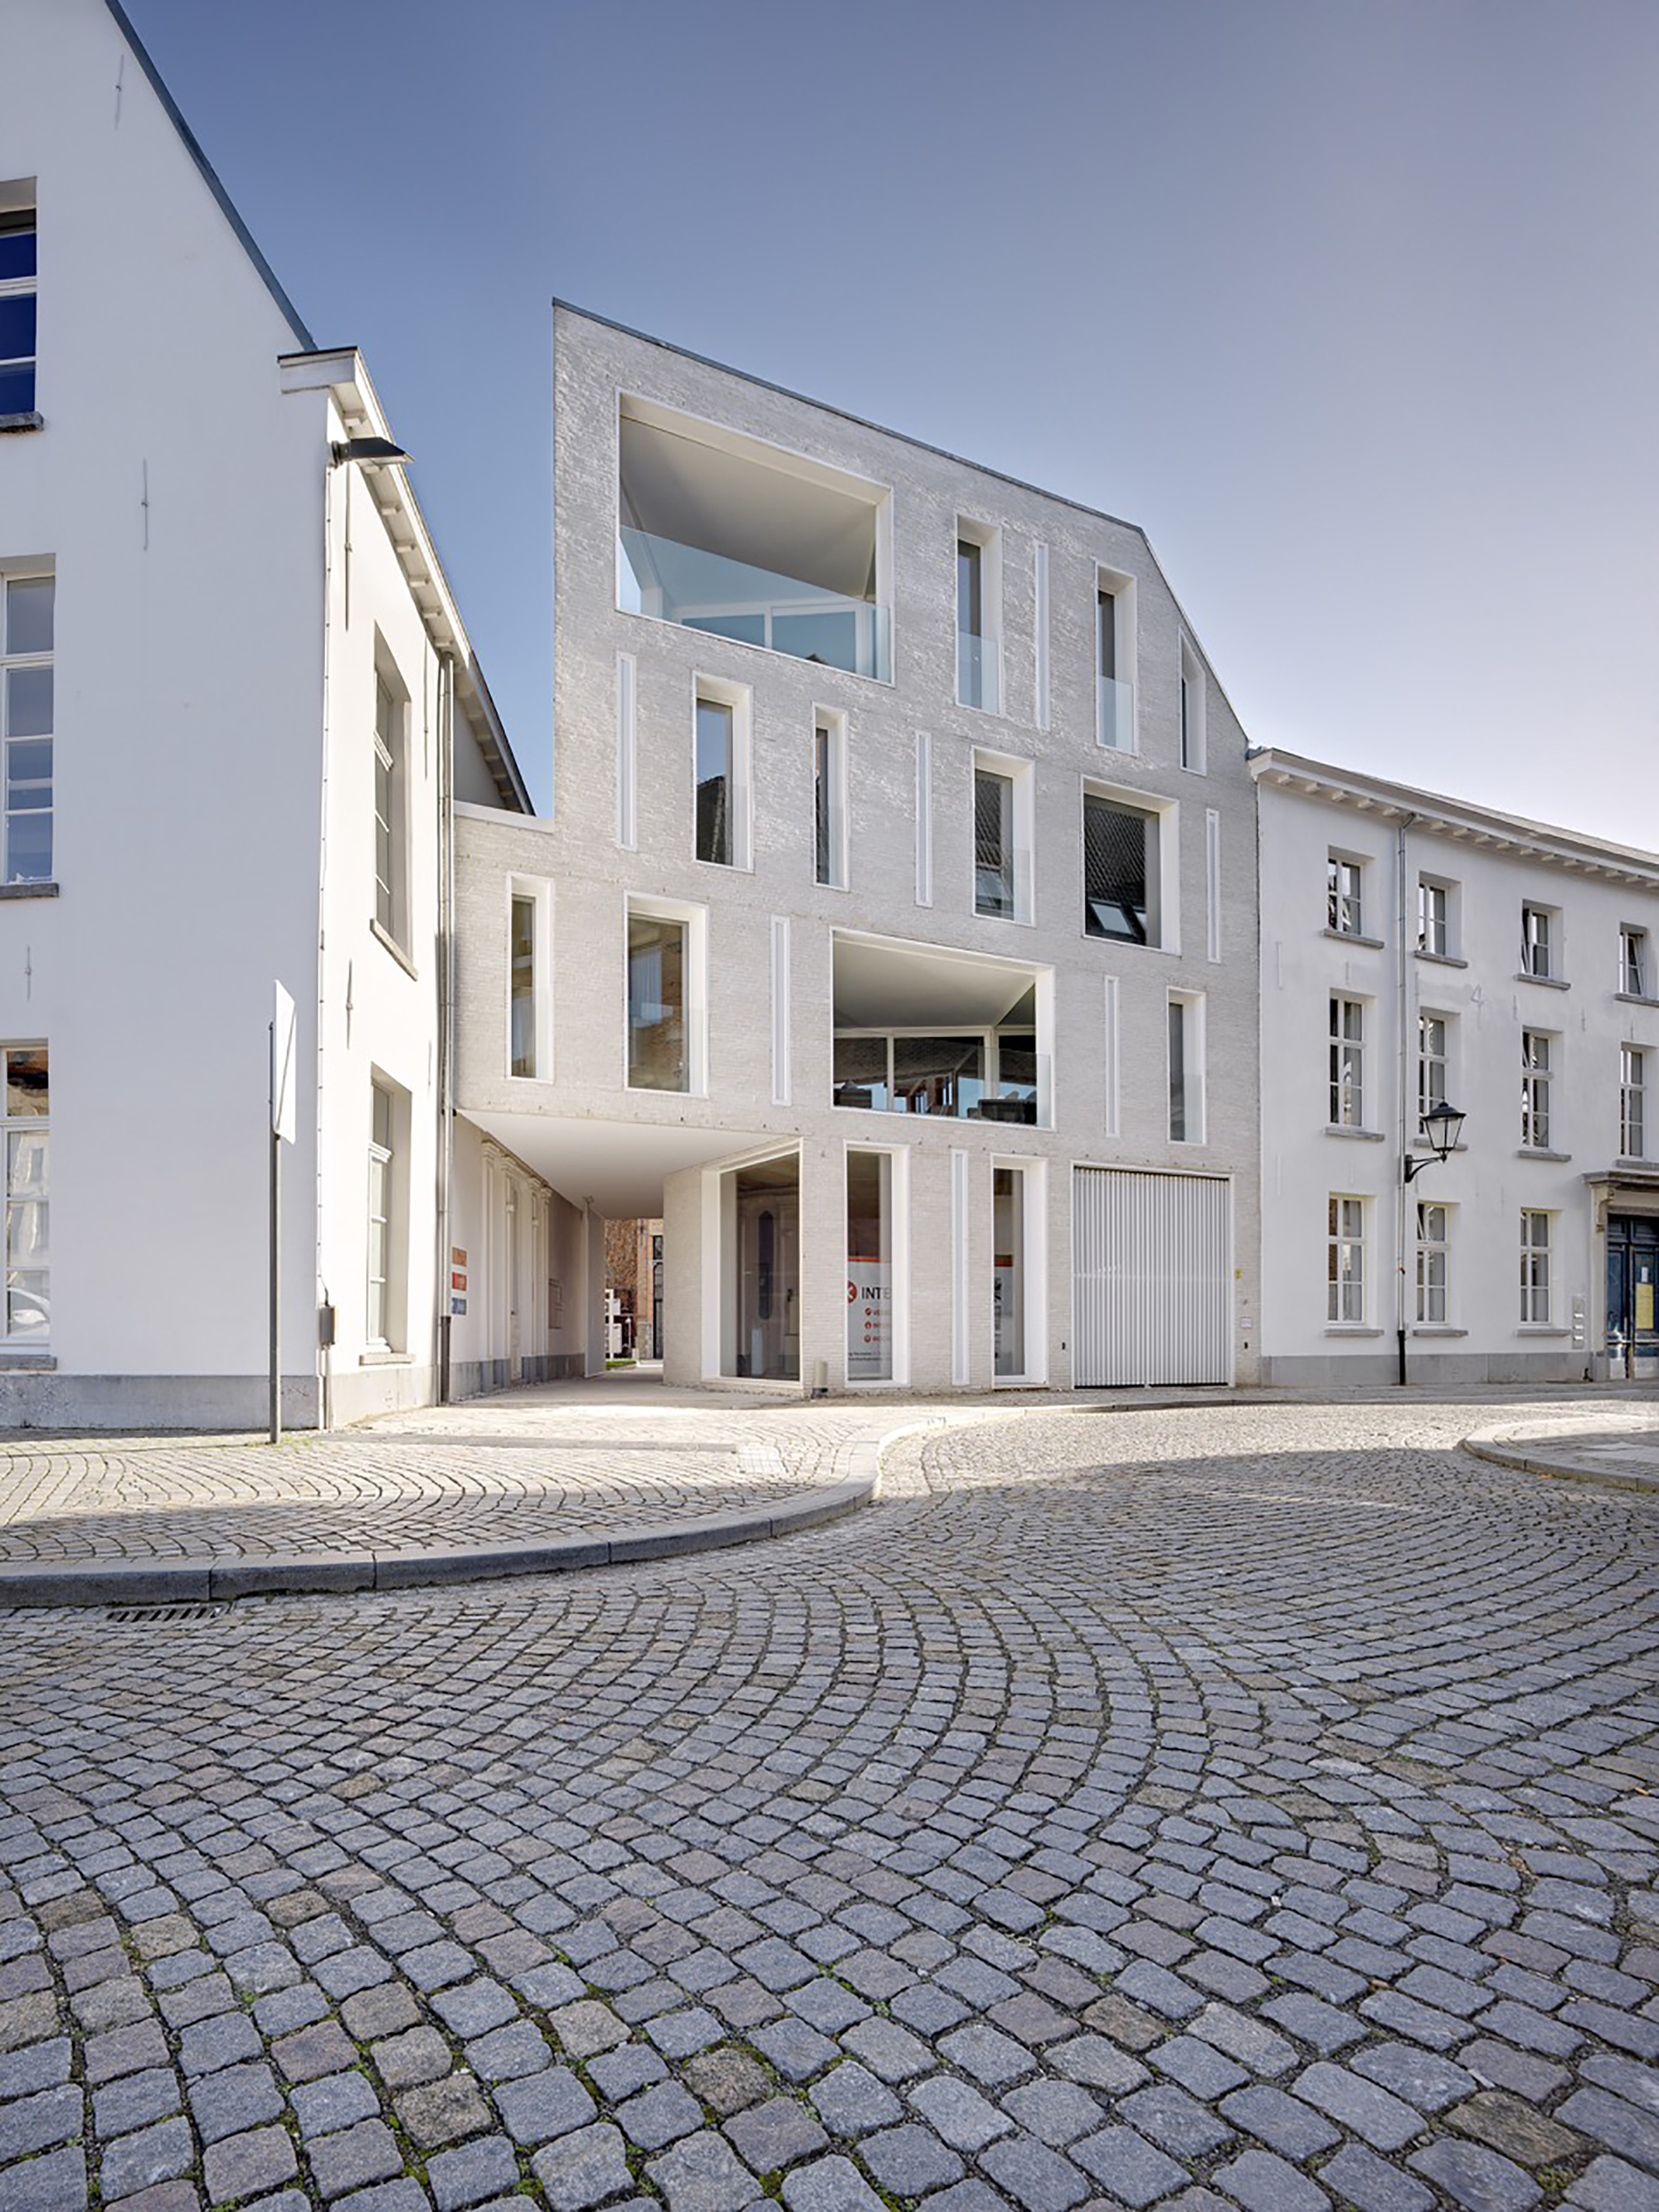 Lorette convent apartments drbstr dmva archdaily for Architecture 00